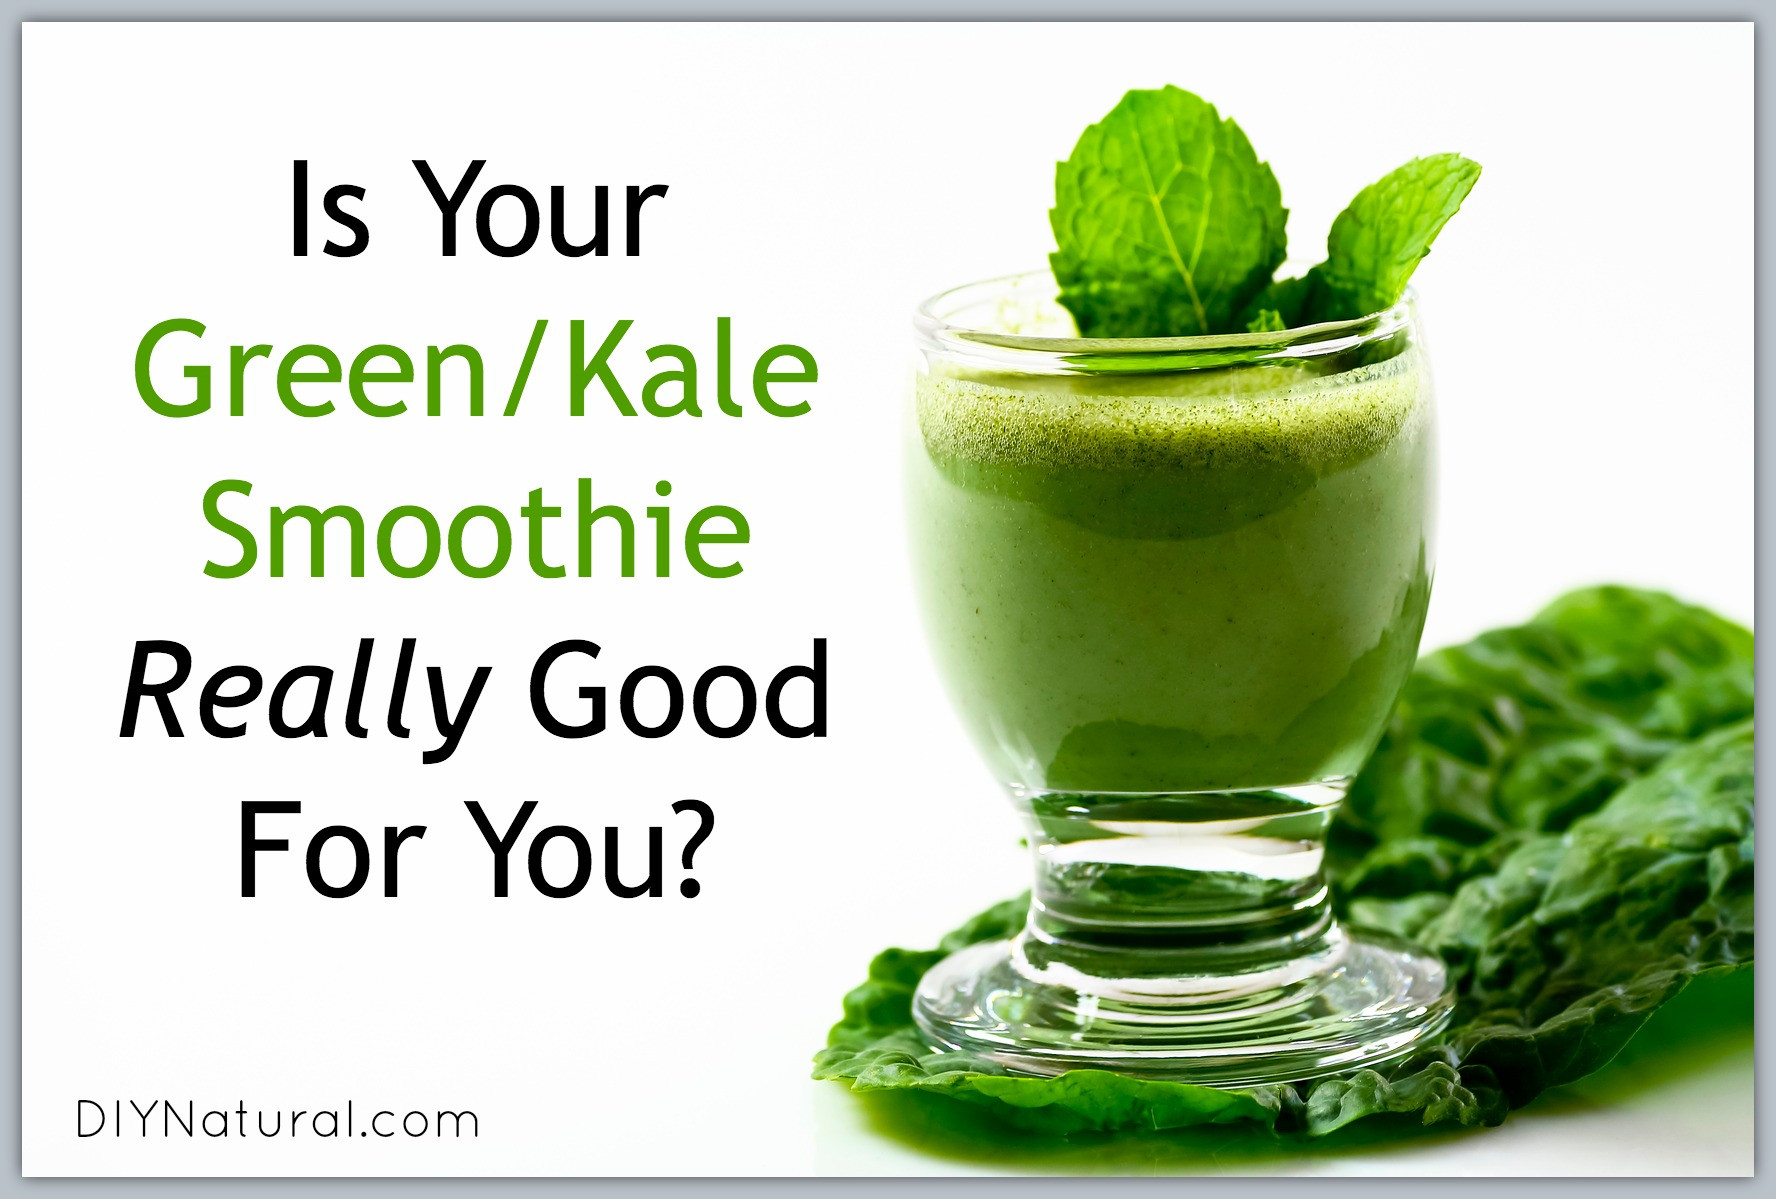 Kale Smoothie Recipes Healthy  Kale Smoothie Are Raw Greens Really Healthy For You